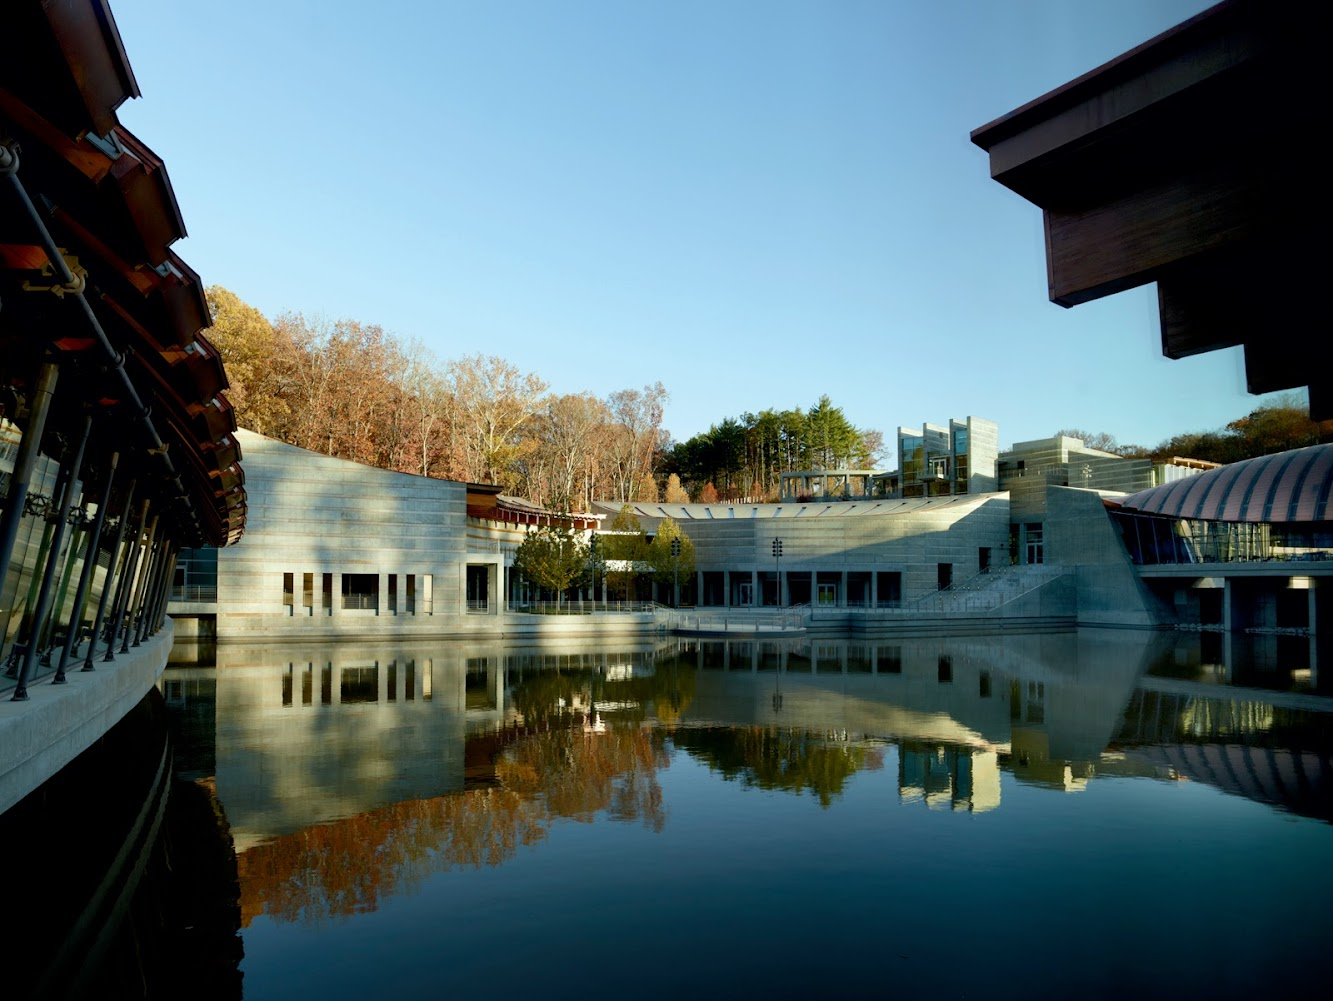 Bentonville, Arkansas, Stati Uniti d'America: Crystal Bridges Museum of American Art by Safdie Architects